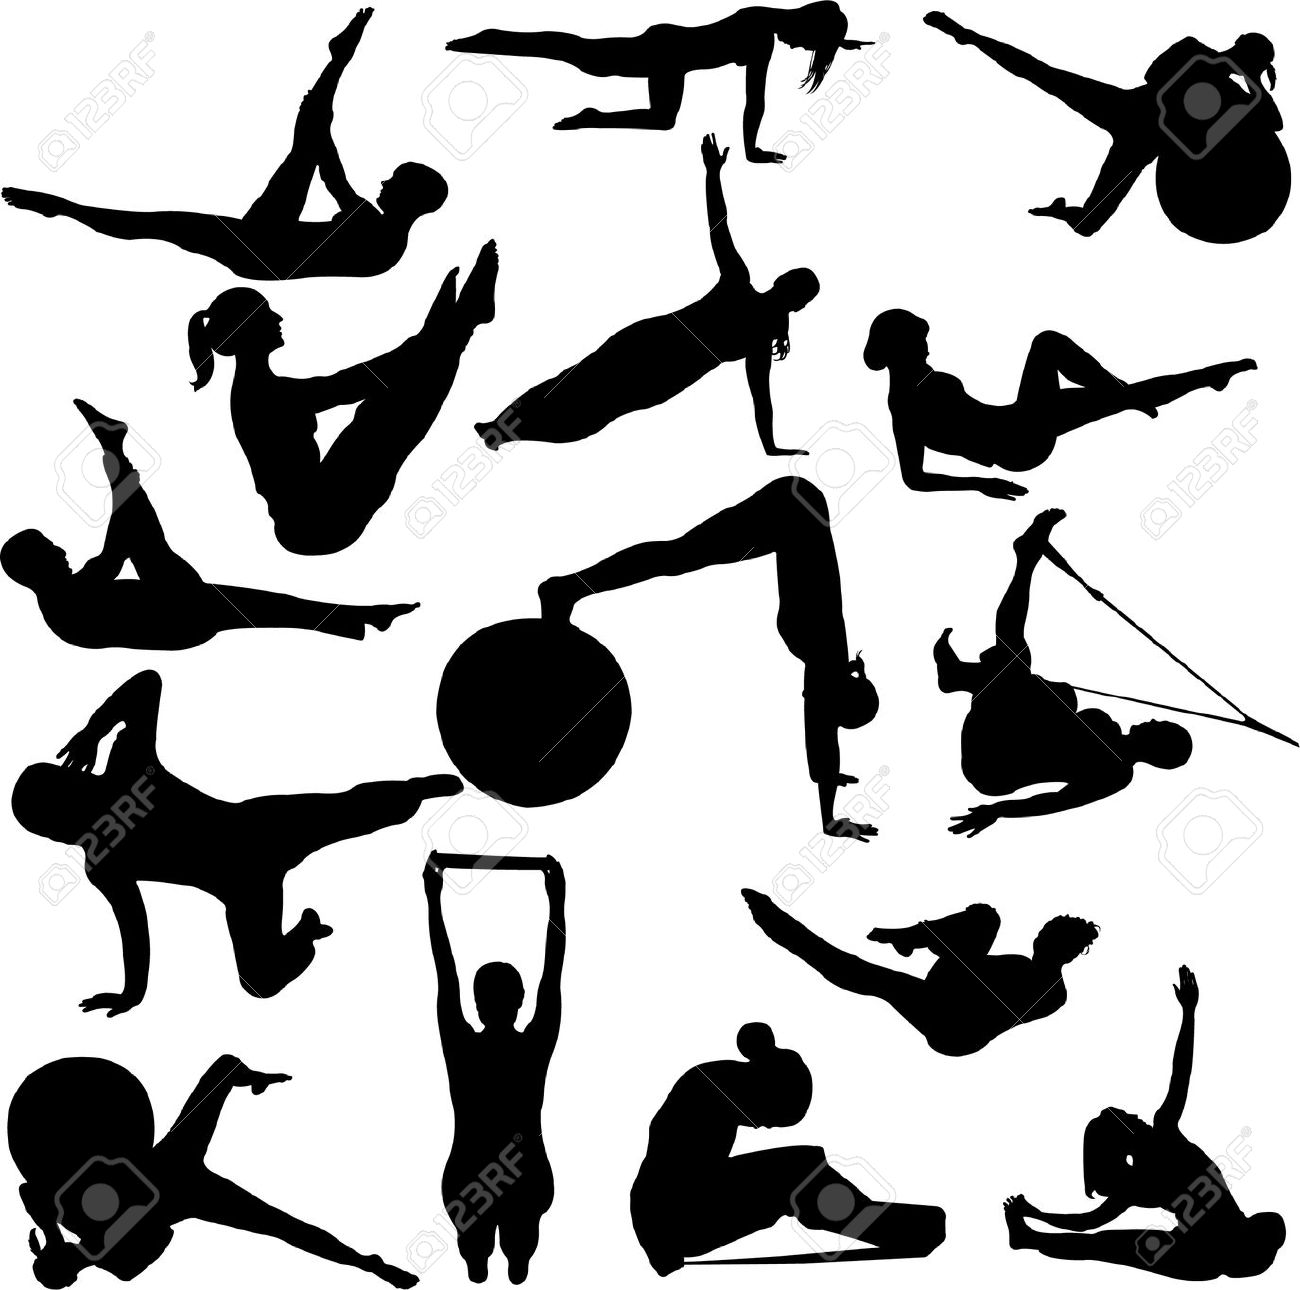 Pilates Women Silhouettes Royalty Free Cliparts, Vectors, And.